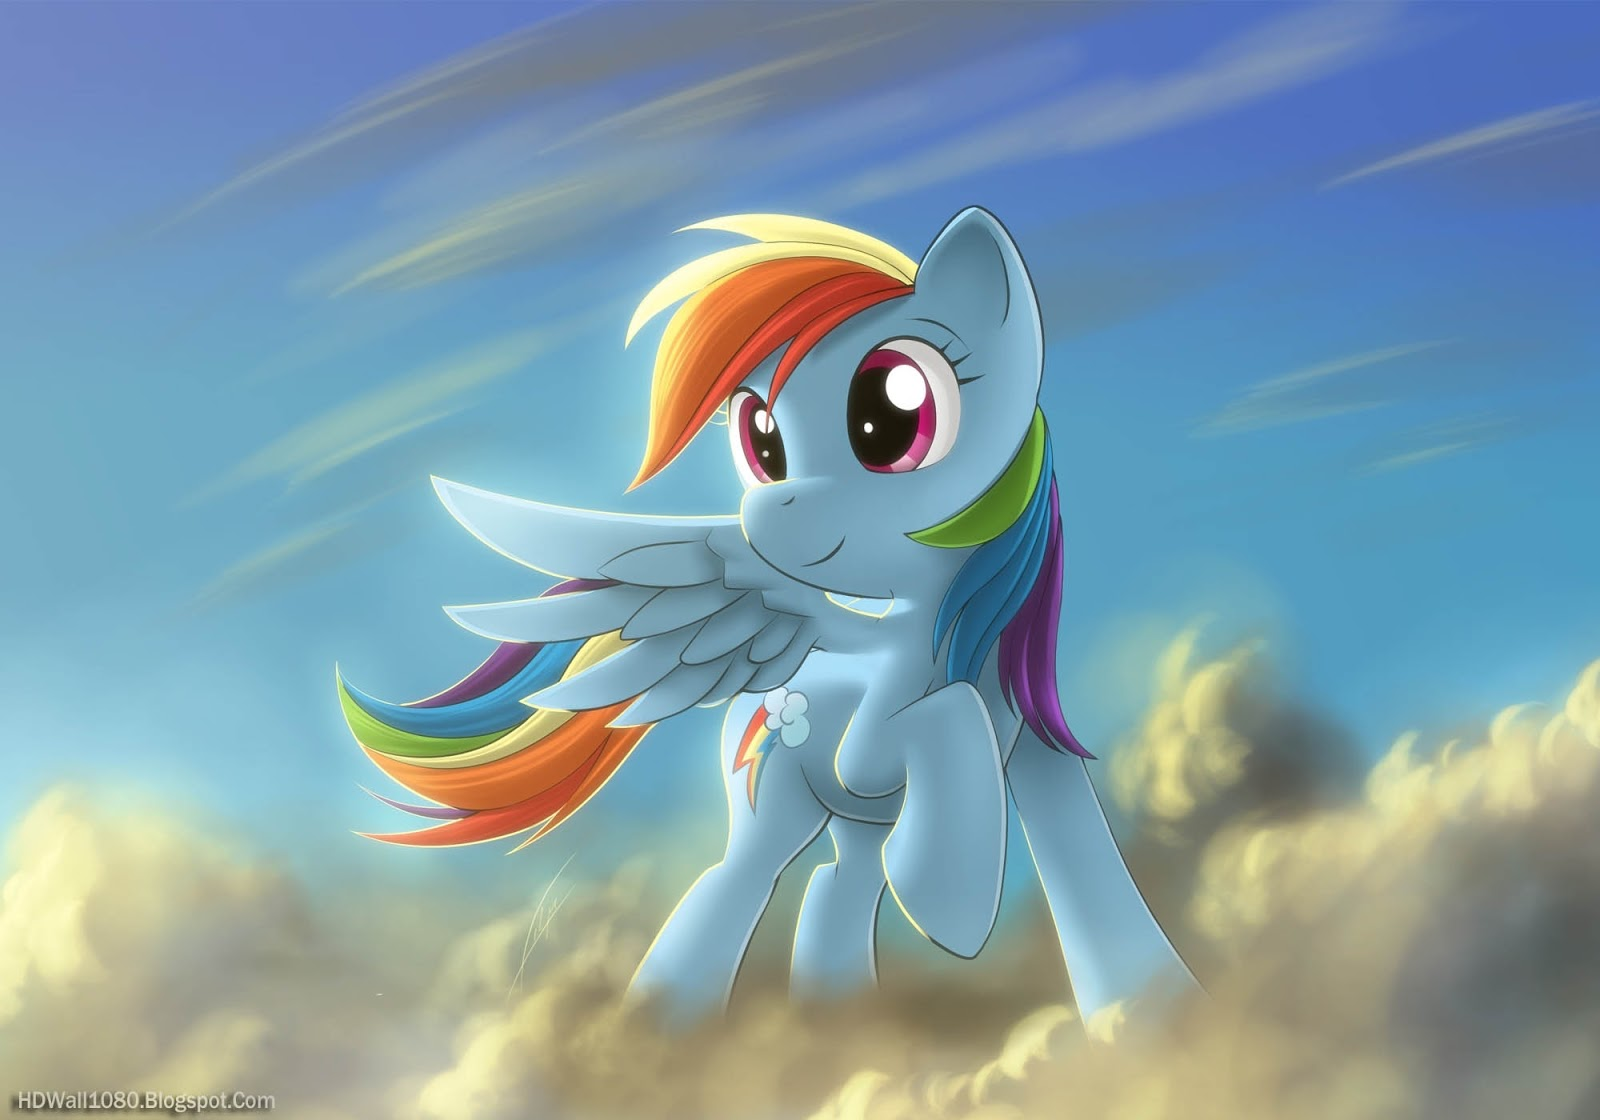 http://3.bp.blogspot.com/-Bpg9u2Cksag/ULo5x3cXhgI/AAAAAAAABIg/vLHFzgK0B_Y/s1600/My+Little+Pony+Cartoon+Wallpaper+HD.jpg